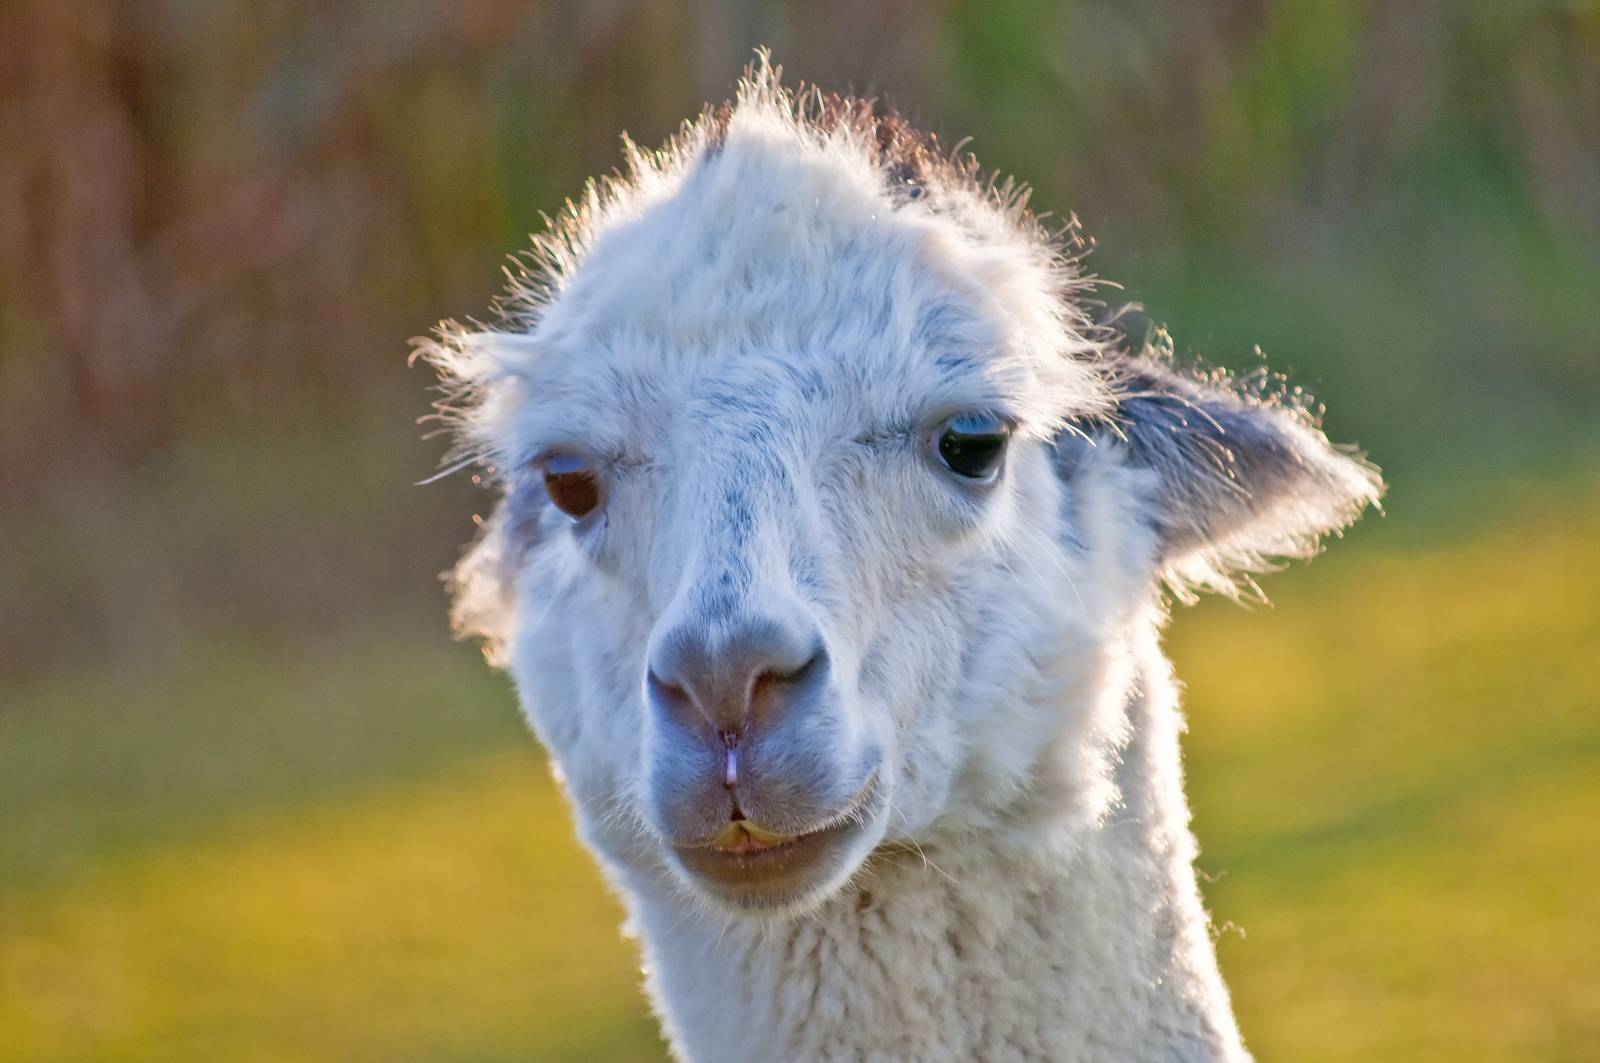 AAT, assisted animal therapy, adorable, alpaca, America, Andes - D34298240